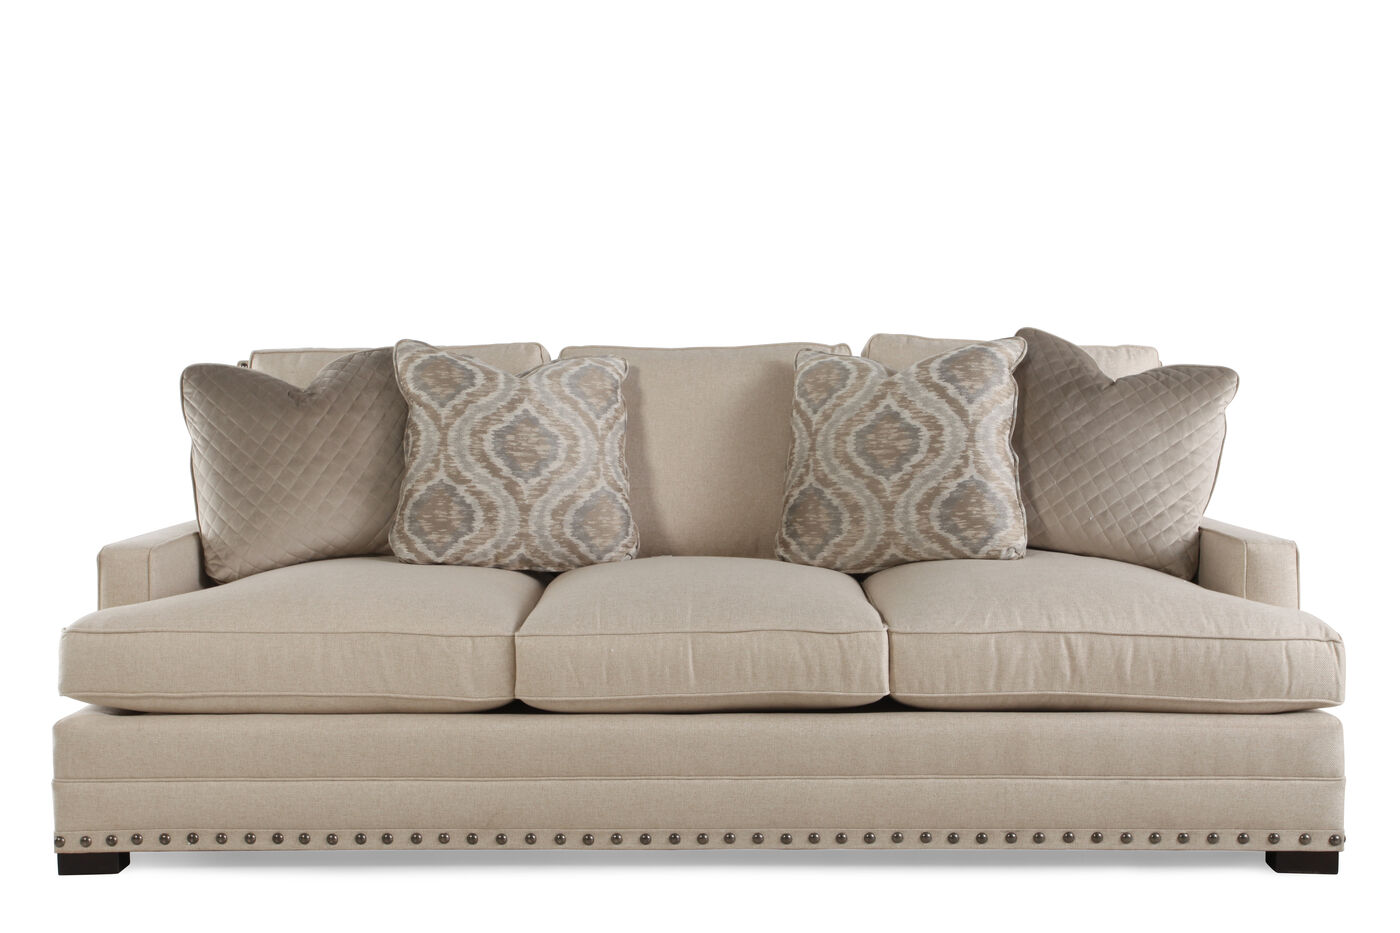 Virginia wayside furniture fetching sofa richmond va sofa for Furniture u save a lot